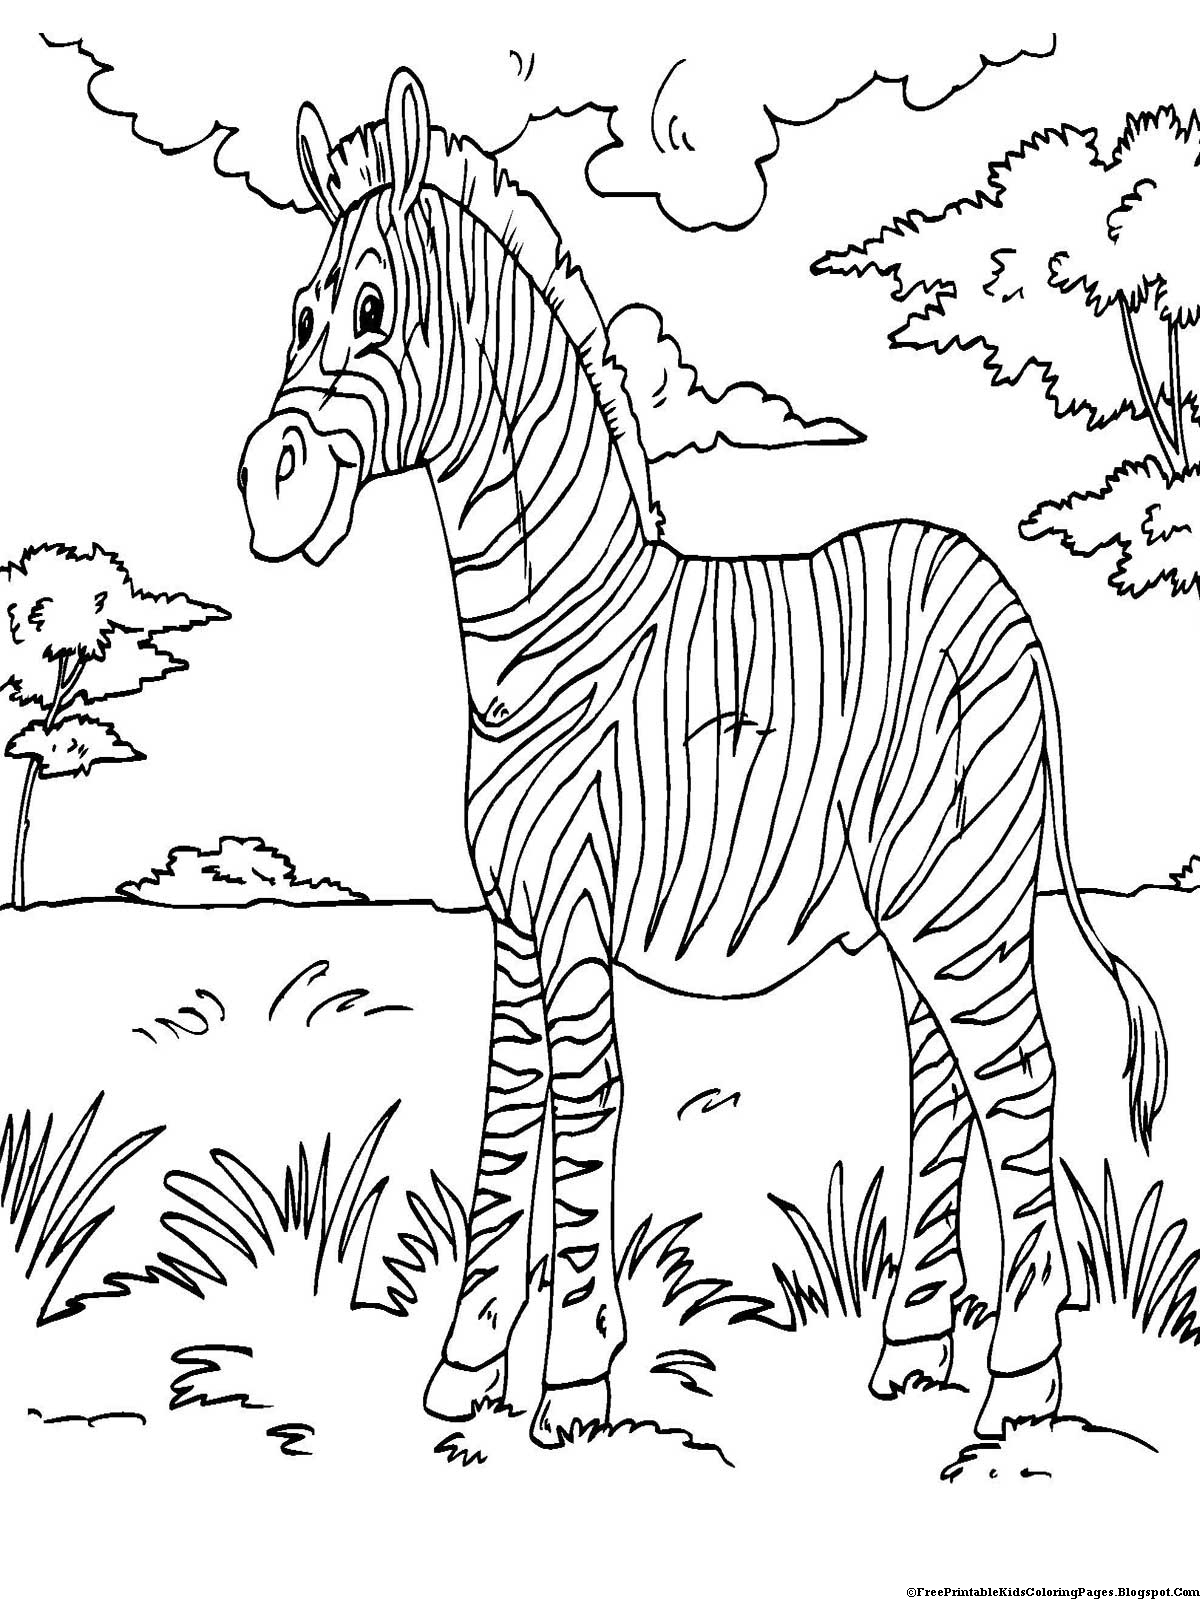 fun colouring pages for kids zebra coloring pages free printable kids coloring pages for kids colouring fun pages